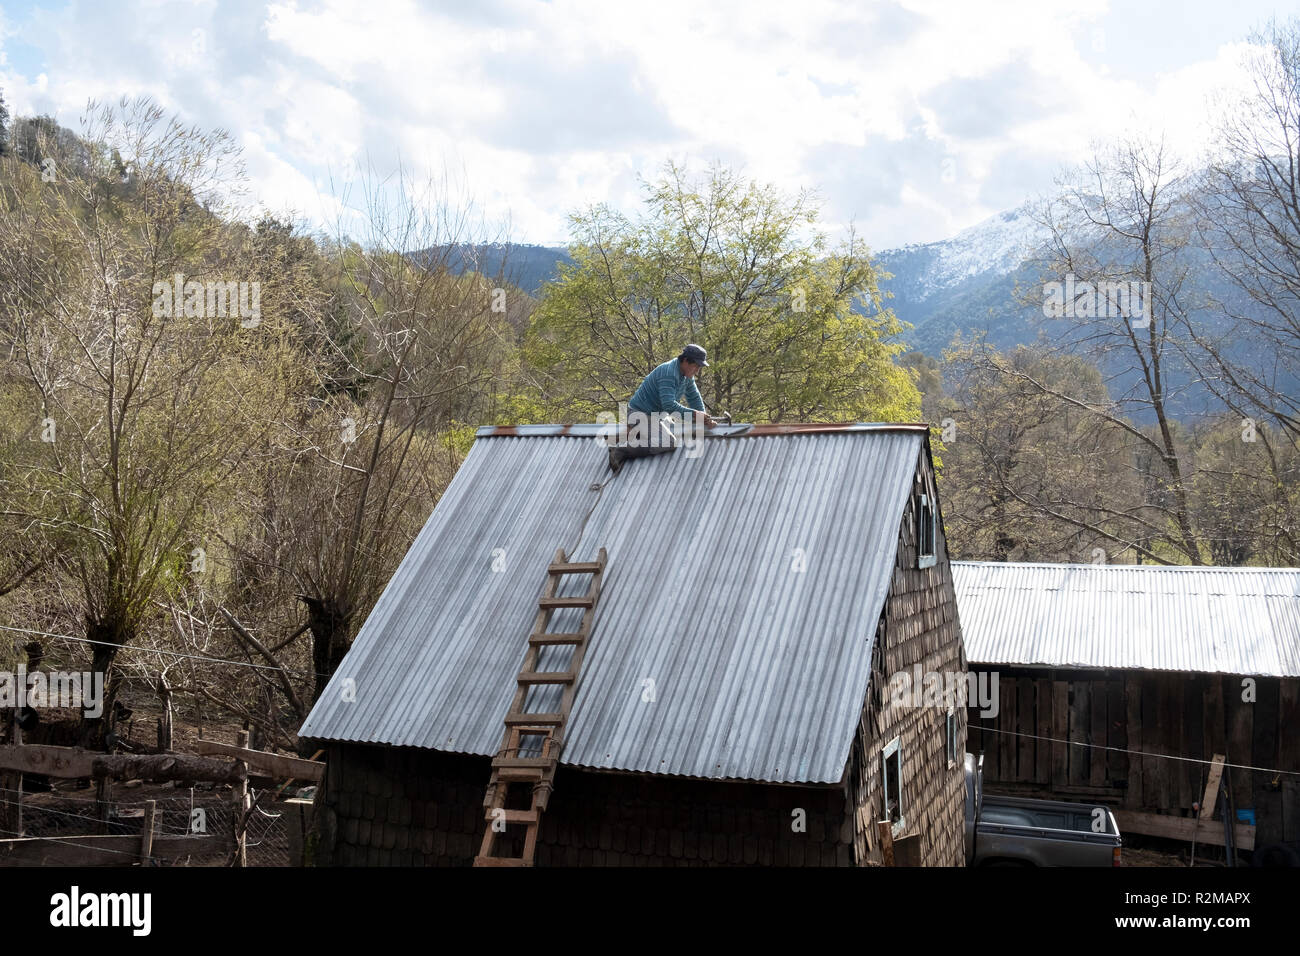 A member of the Mapuche tribal people, repairs the roof of his barn in Reigolil, Chile - Stock Image